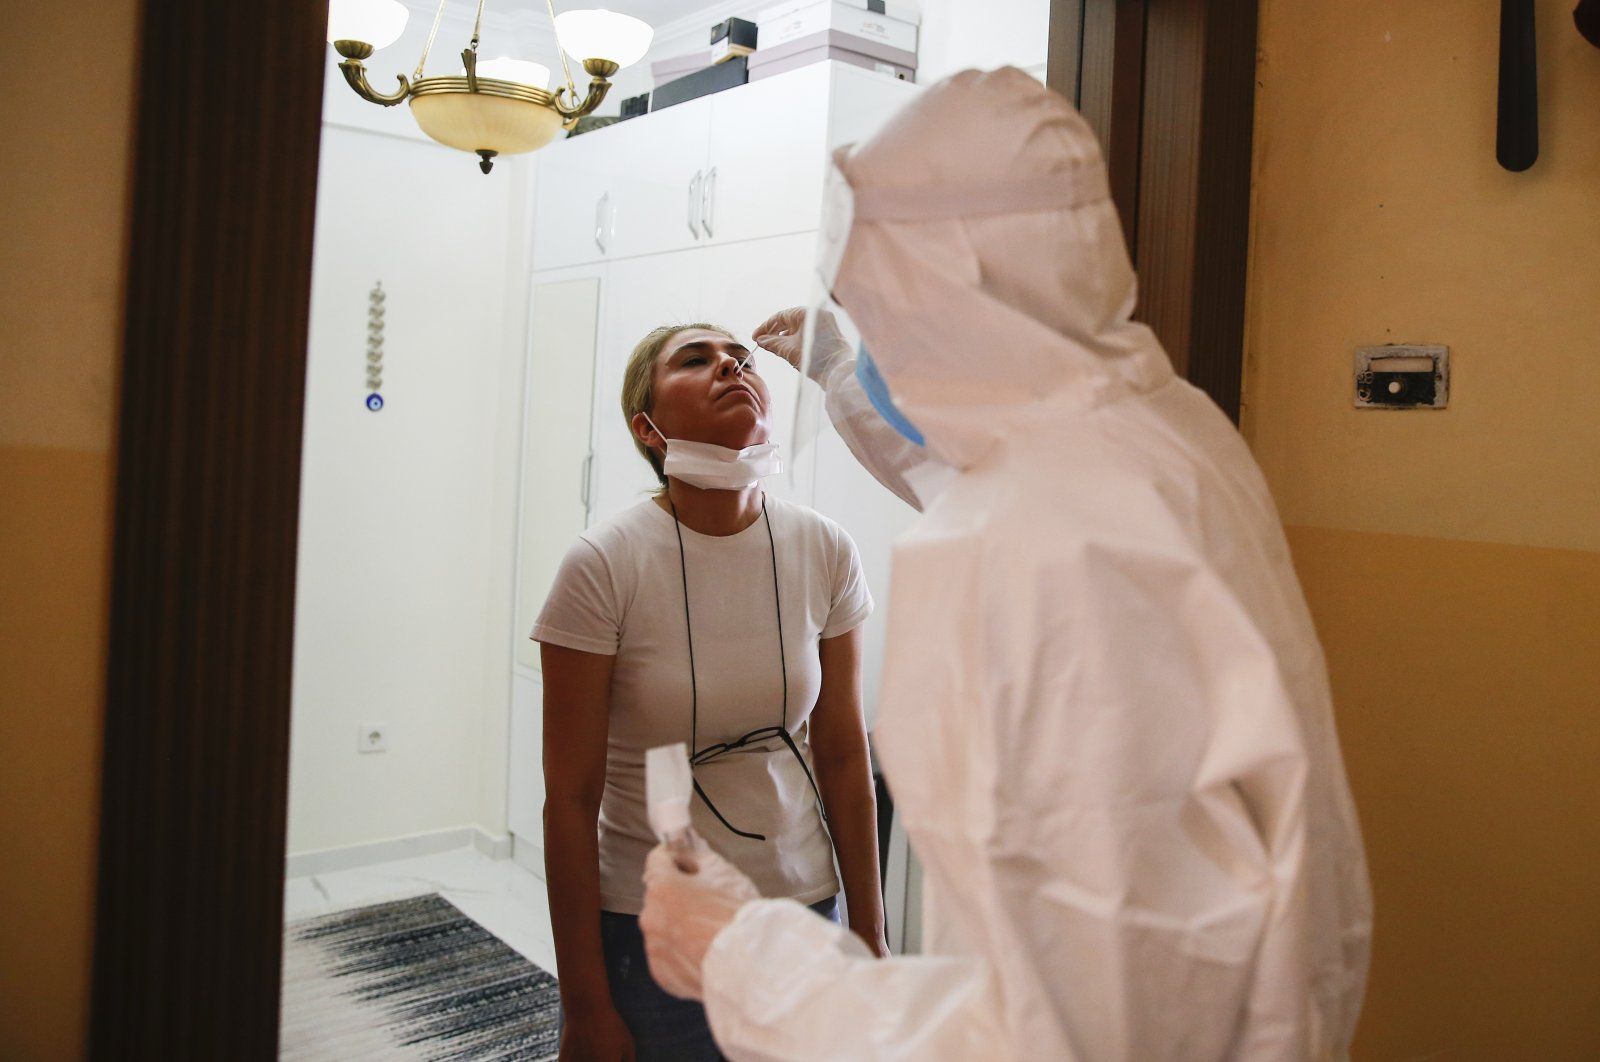 In this Friday, May 15, 2020 photo, a contact tracer with Turkey's Health Ministry's coronavirus contact tracing team, clad in white protective gear, mask and face shield, swabs Betul Sahbas, 47, left, who had been experiencing COVID-19 symptoms, to take a sample at her home in Istanbul. (AP Photo)